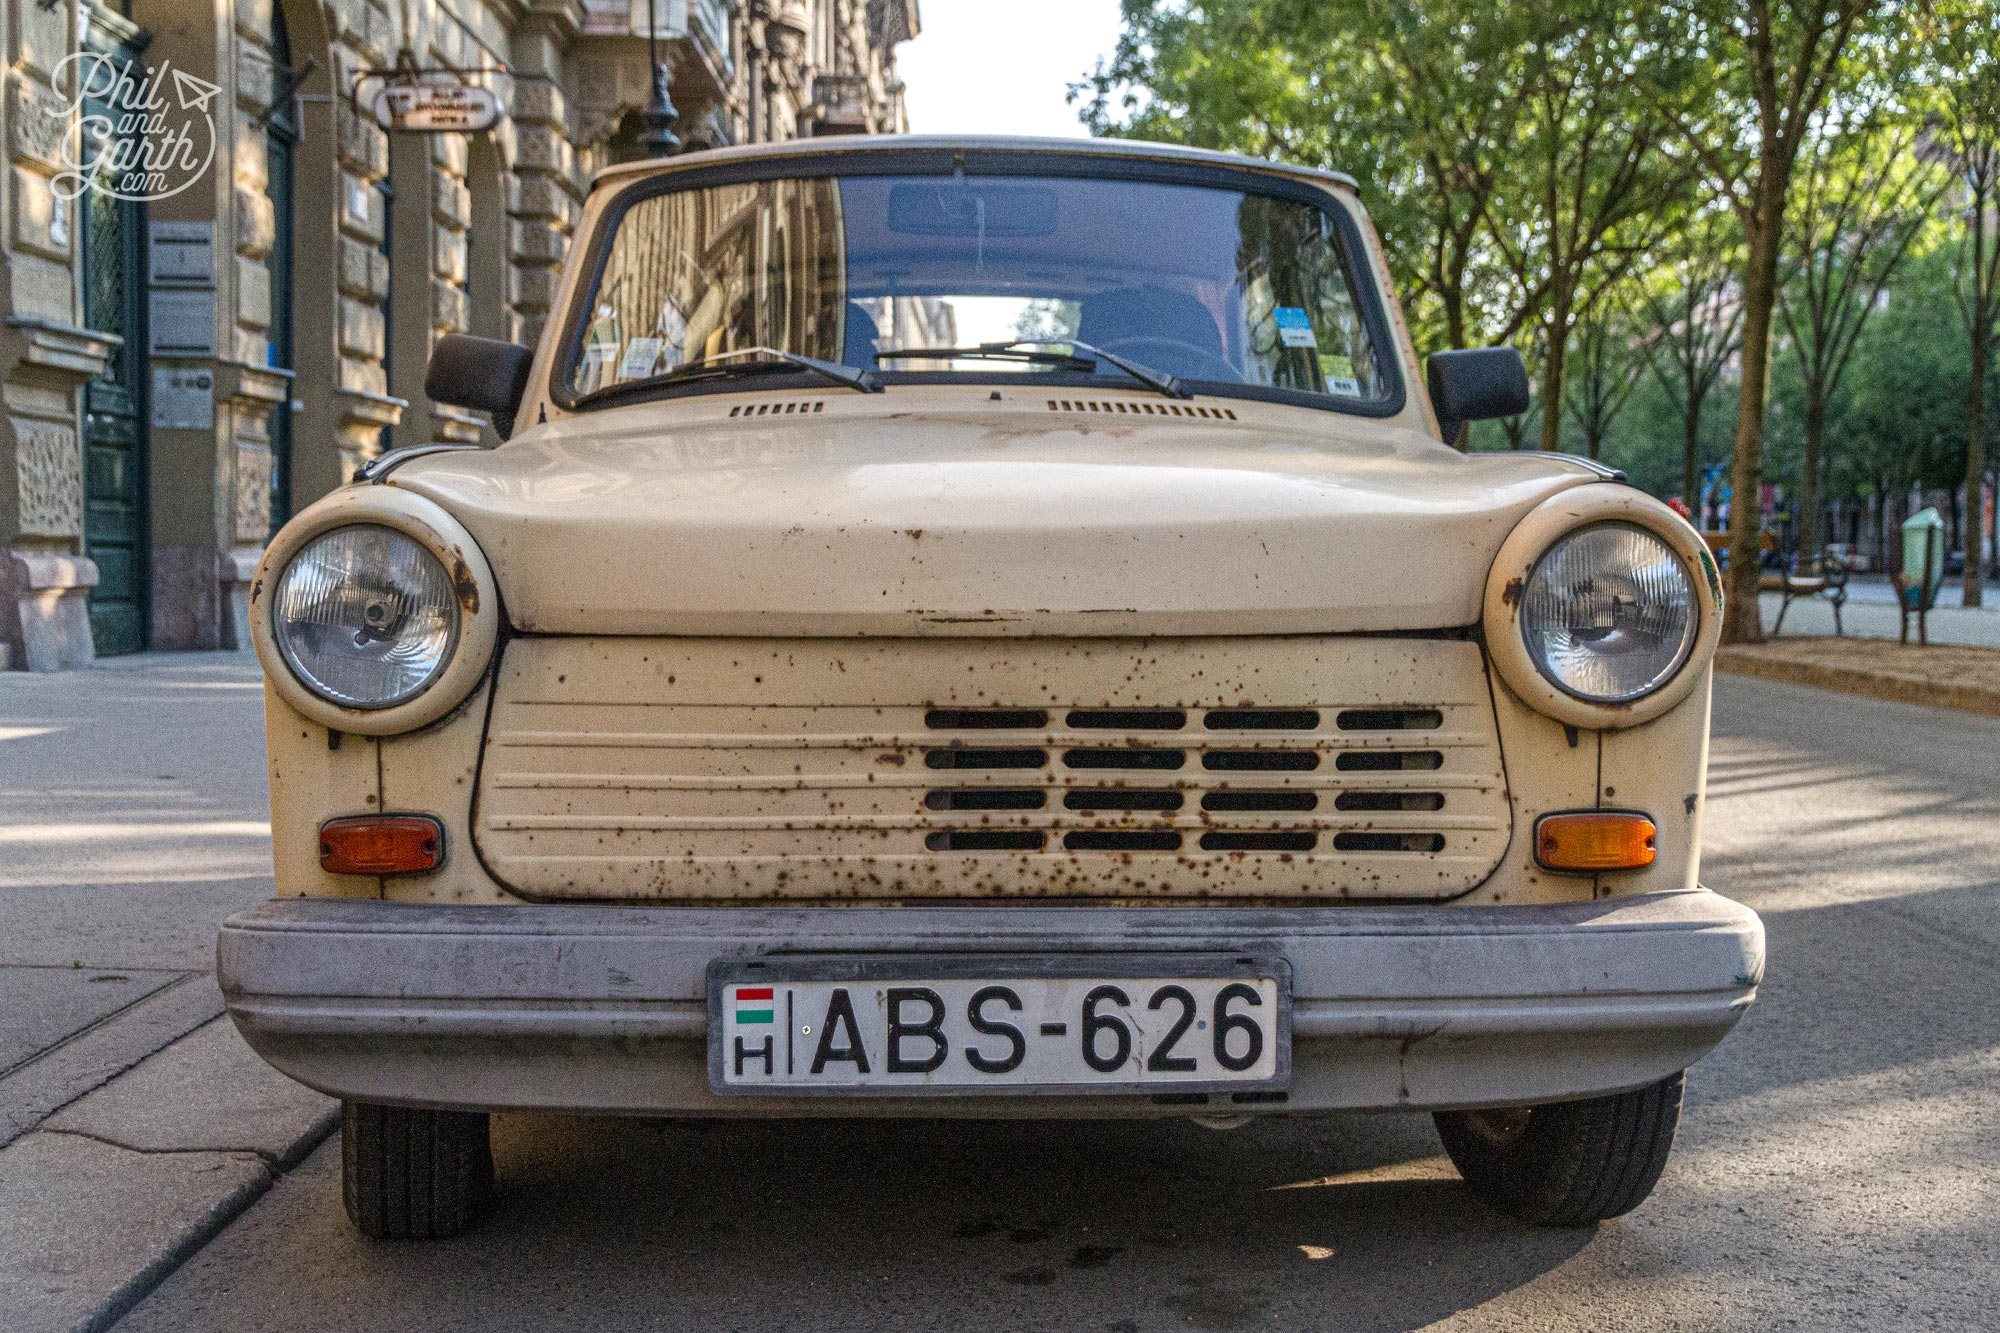 Signs of the past - a Trabant car. Budapest was once under the rule of the communist Soviet Union for 40 years